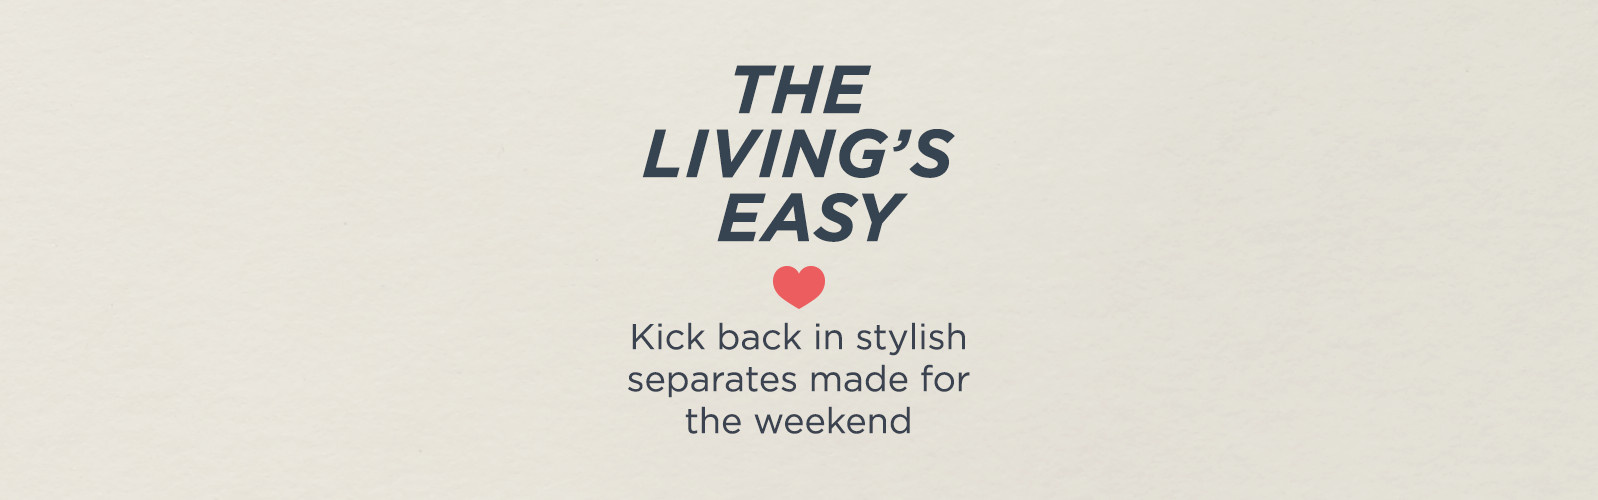 The Living's Easy Kick back in stylish separates made for the weekend